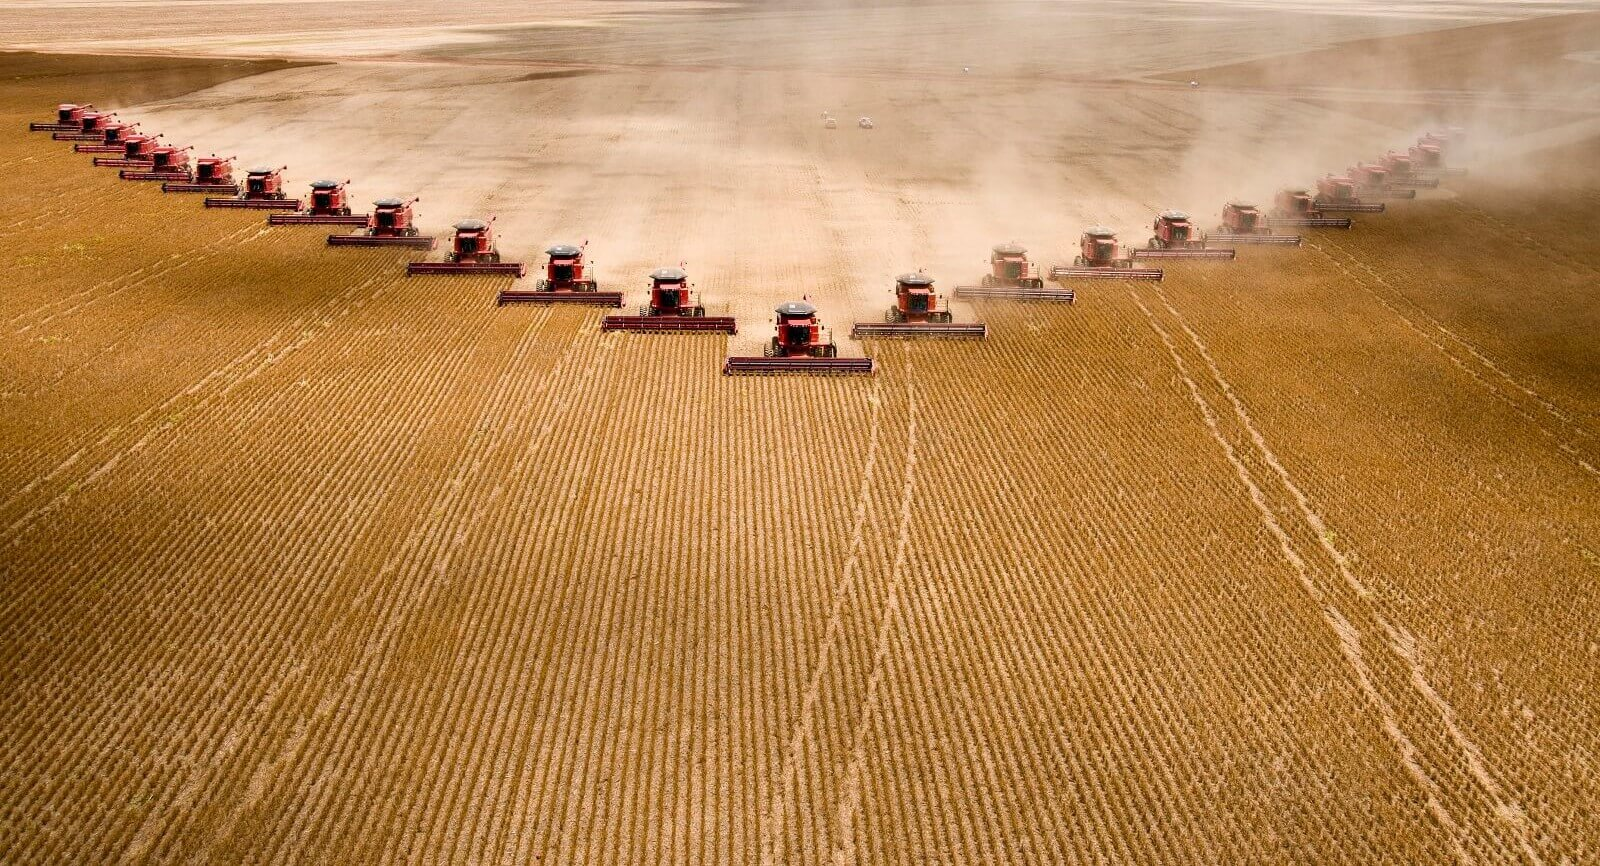 Soybeans are harvested in Brazil (Photo: Paulo Fridman, via Getty)